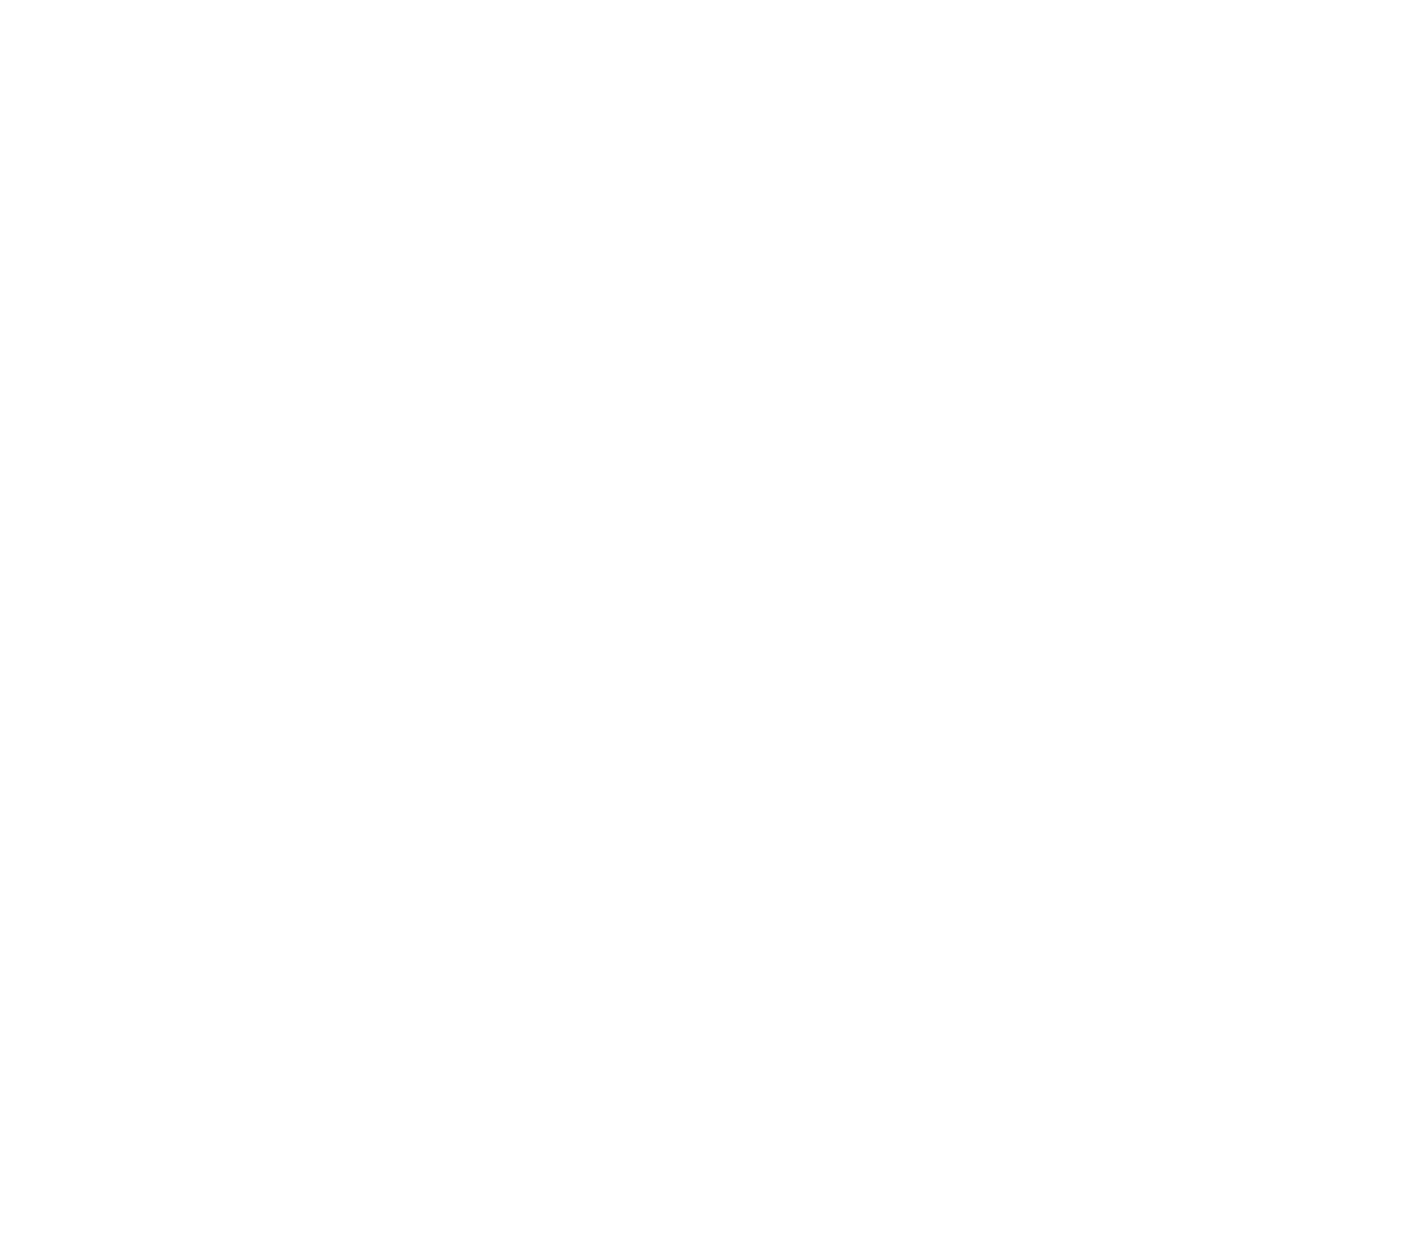 East Bay ICT Partnership